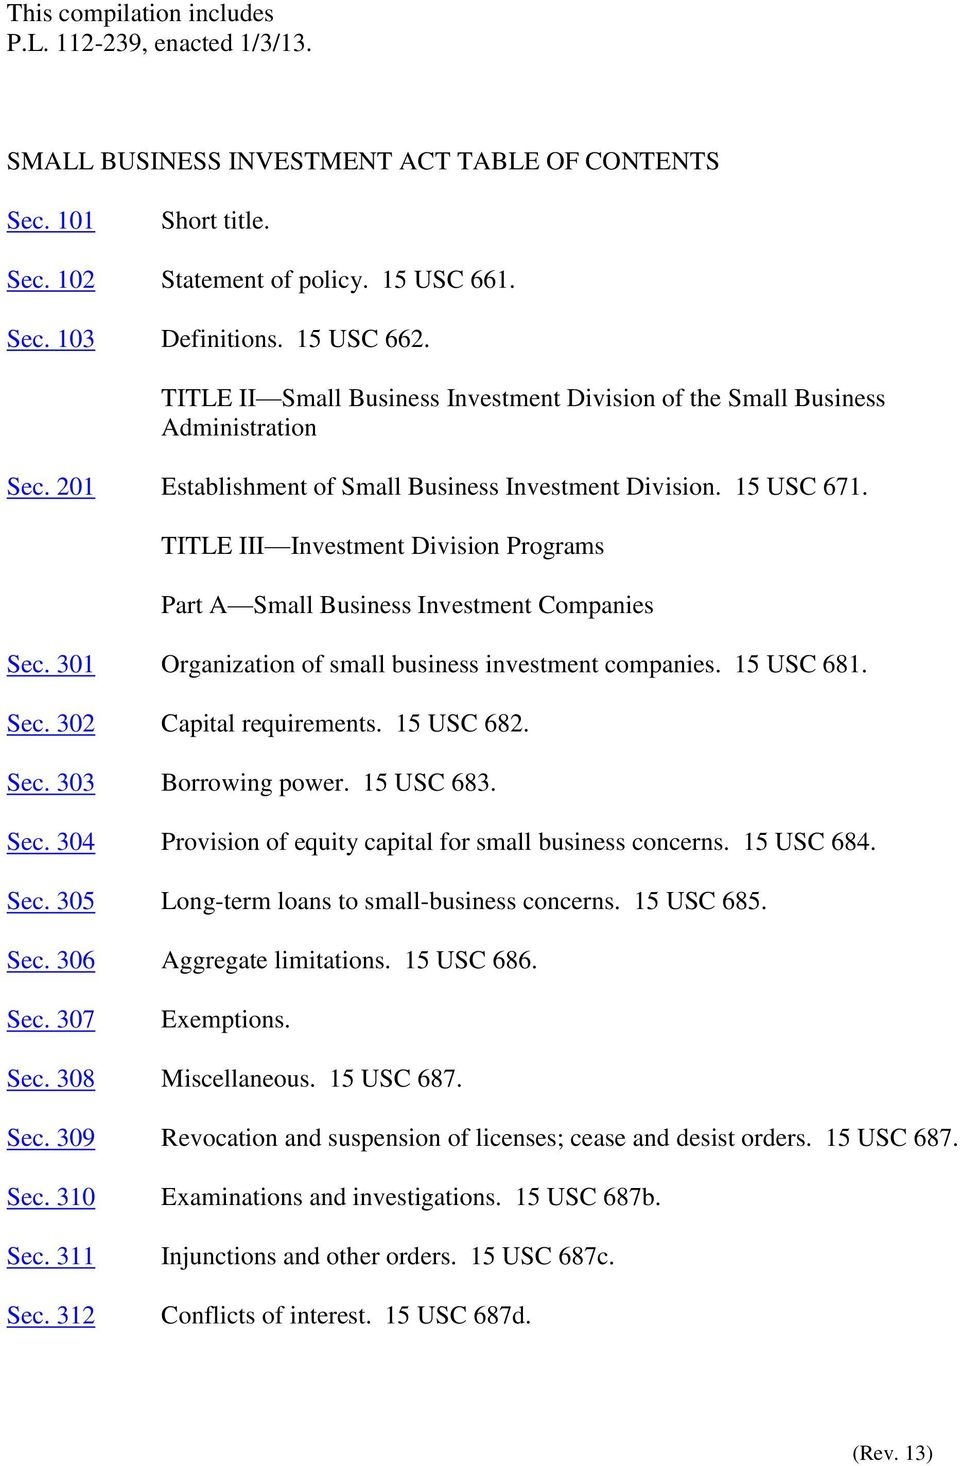 TITLE III Investment Division Programs Part A Small Business Investment Companies Sec. 301 Organization of small business investment companies. 15 USC 681. Sec. 302 Capital requirements. 15 USC 682.